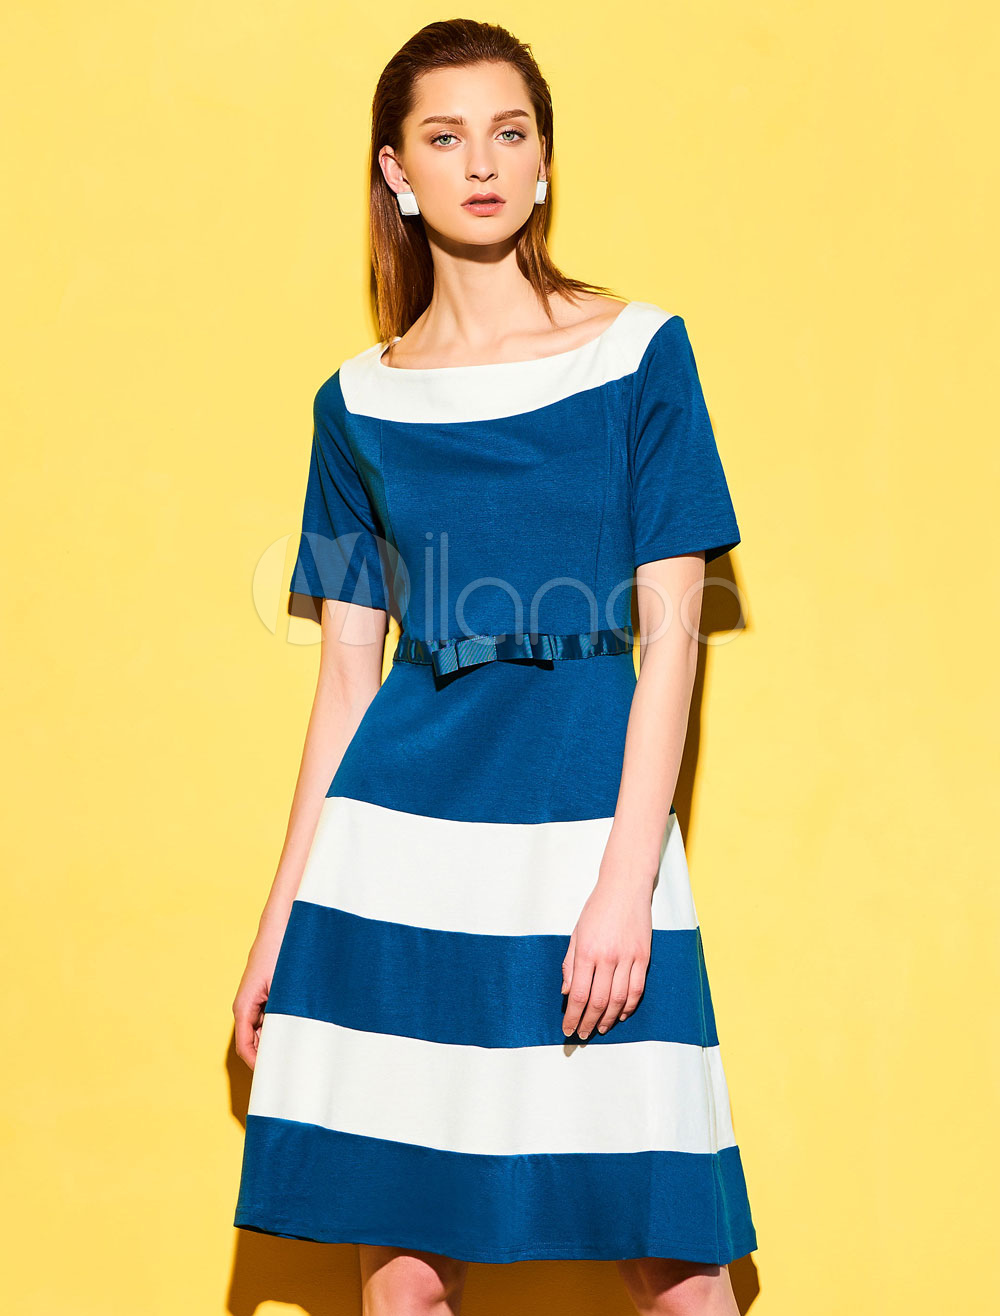 Buy Blue Vintage Dress Round Neck Short Sleeve Bows Striped A Line Dresses For Women for $23.74 in Milanoo store